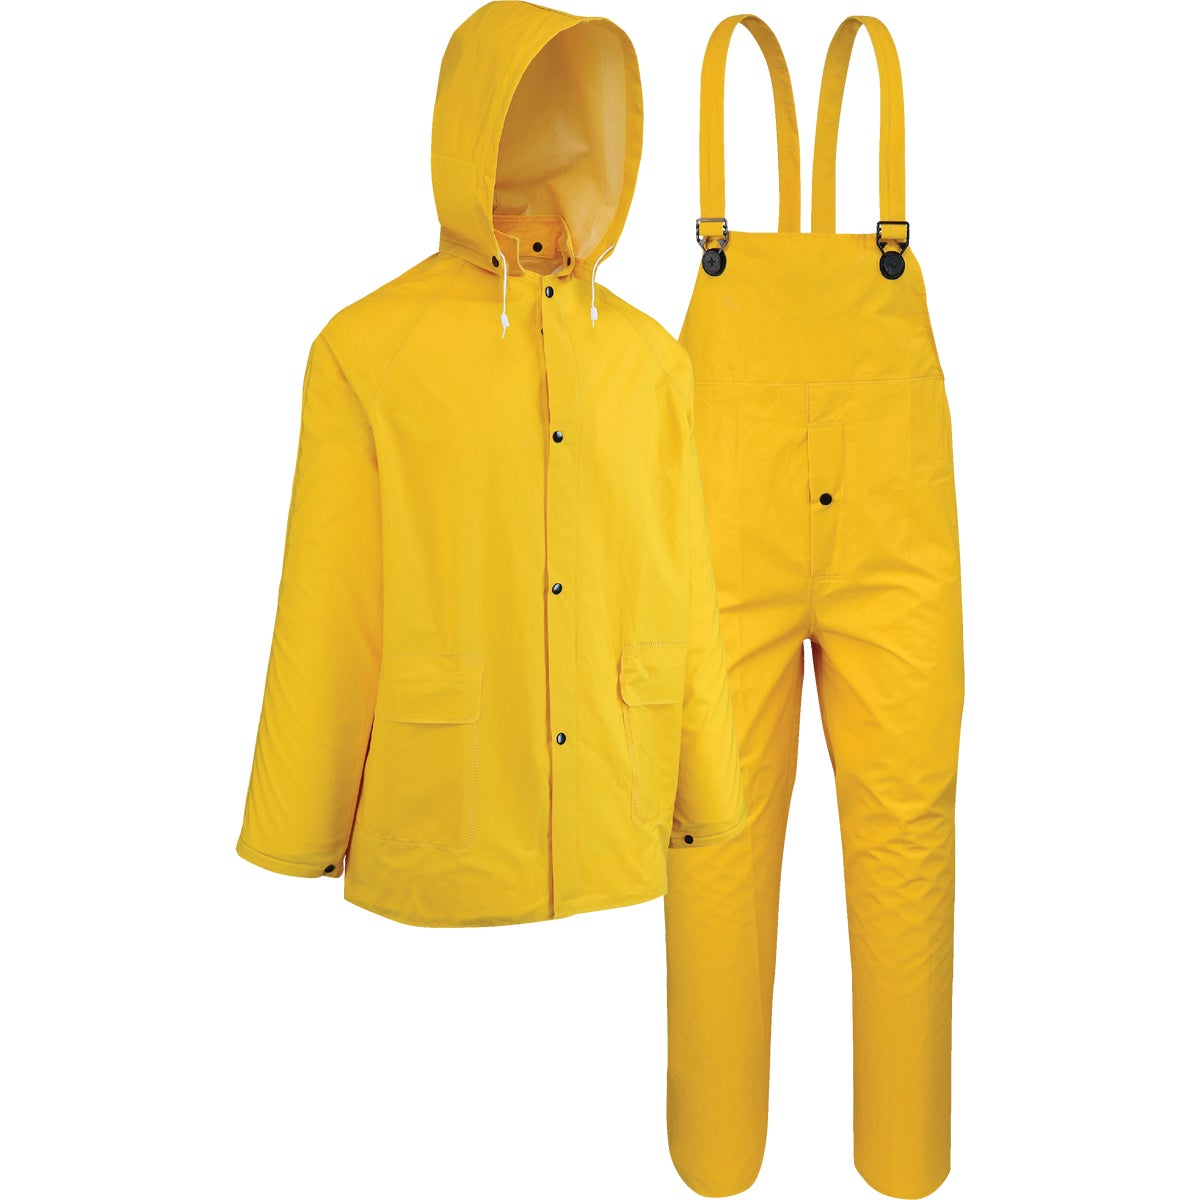 West Chester 3-Piece PVC Yellow Rain Suit, 44035/3XL